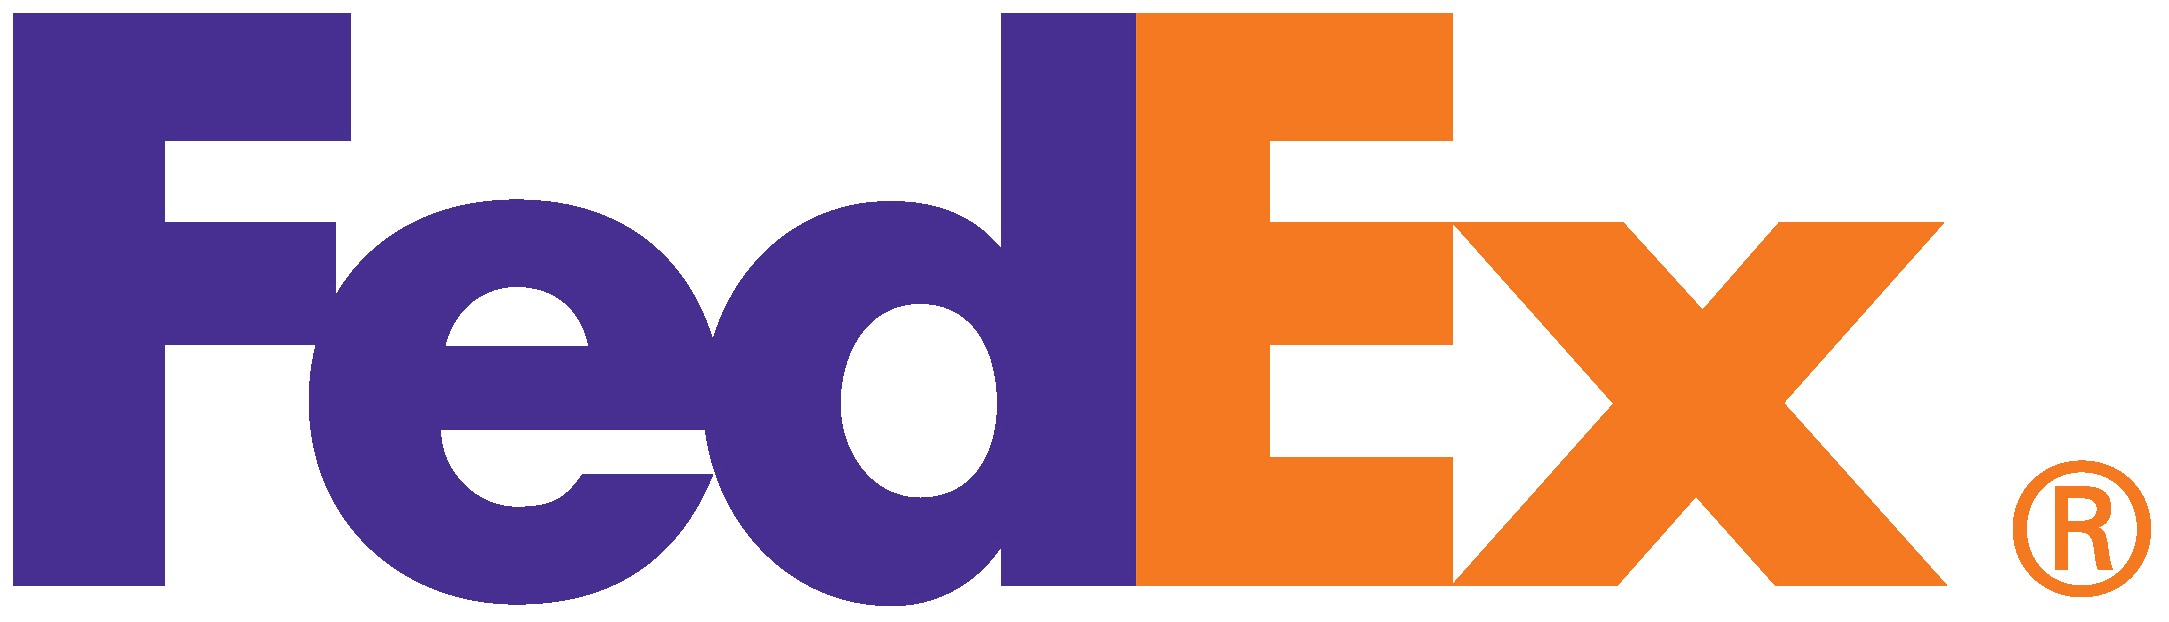 Logo design at it's best: the FedEx logo.